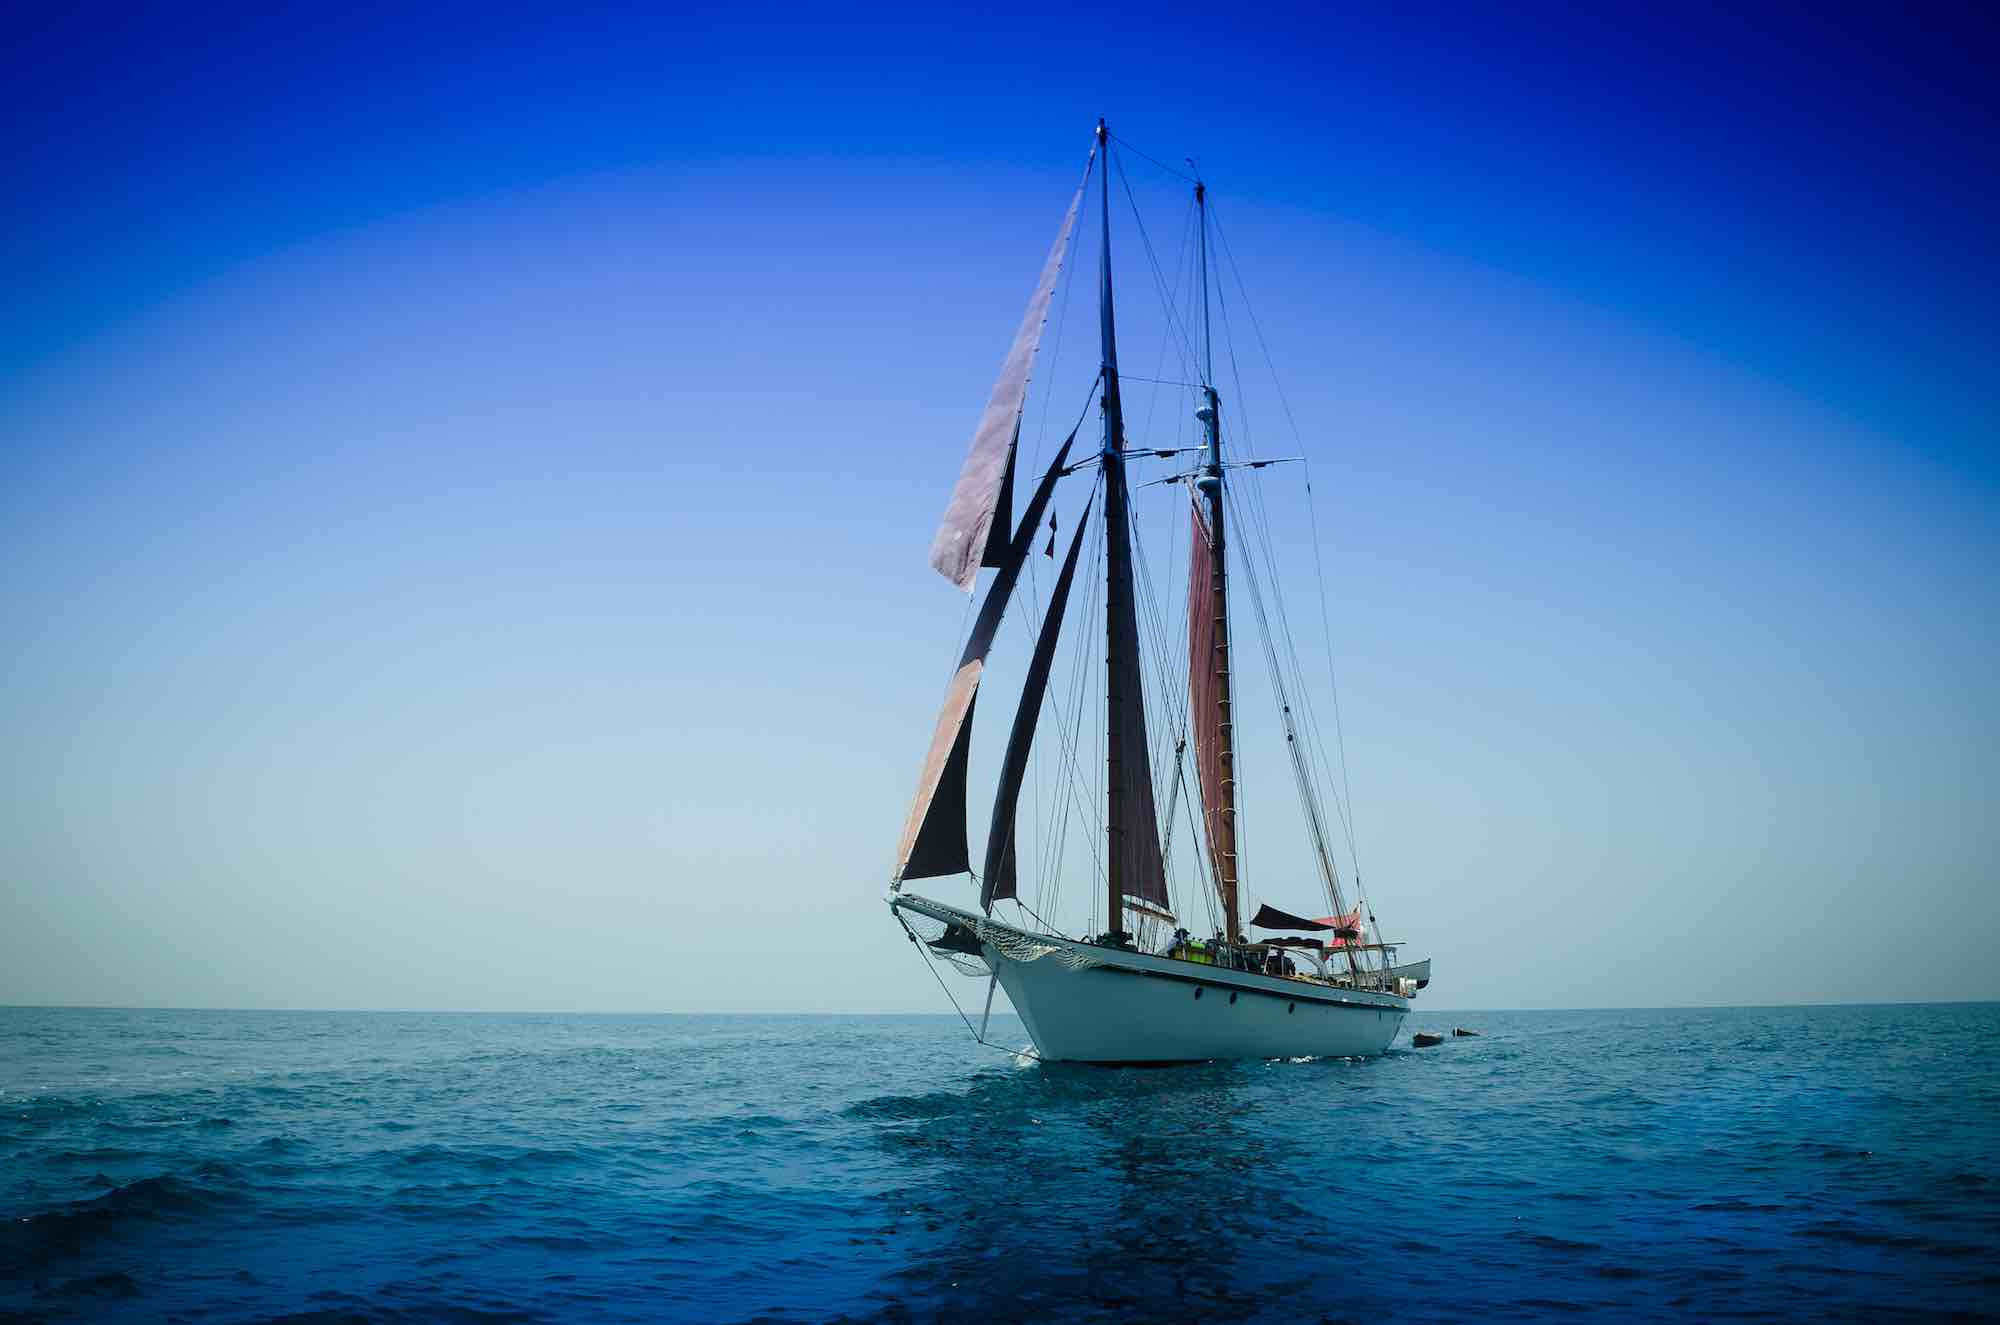 Dallinghoo_yacht under sail azure sky and blue sea sailing holiday in Myanmar_XS.jpeg